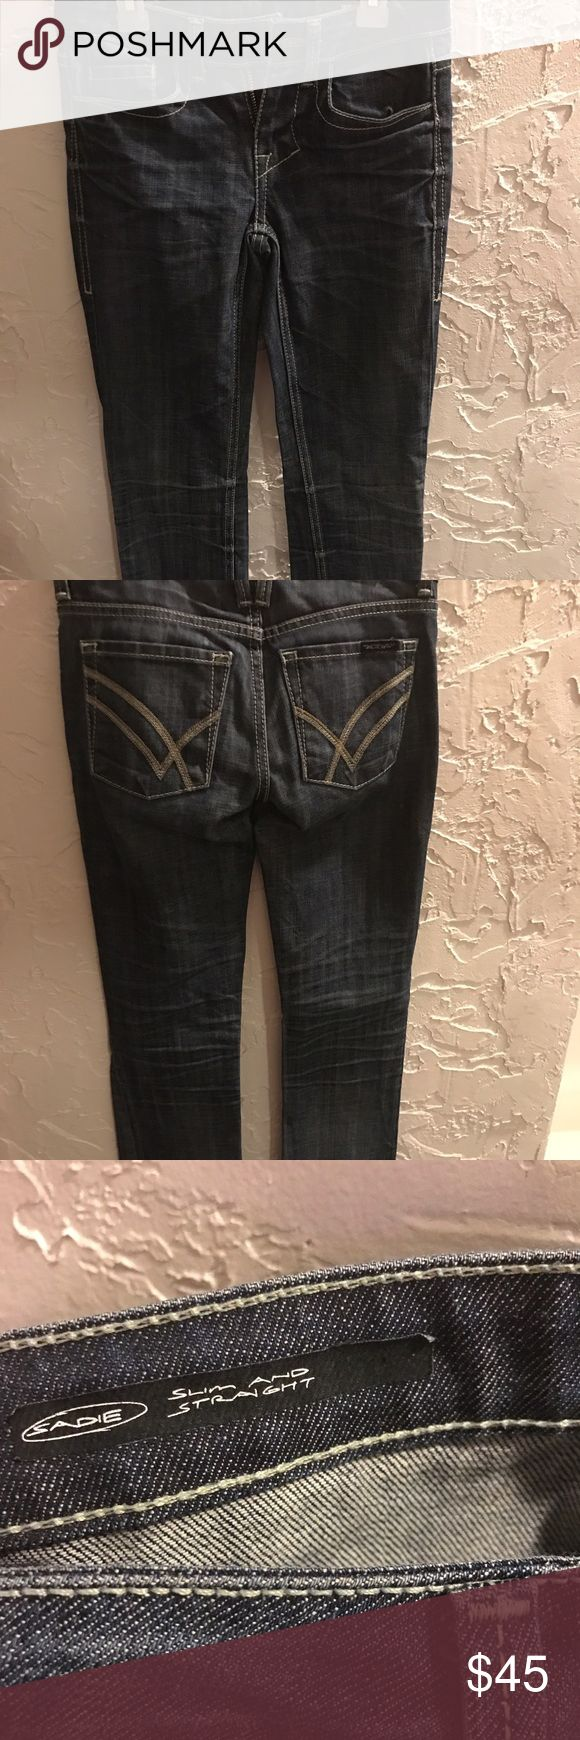 William Rast Jeans size 23. Just like new dark wash William Rast Jeans. Super high quality pair of jeans that just don't fit right anymore. Super good fabric. No tears or stains. William Rast Jeans Straight Leg